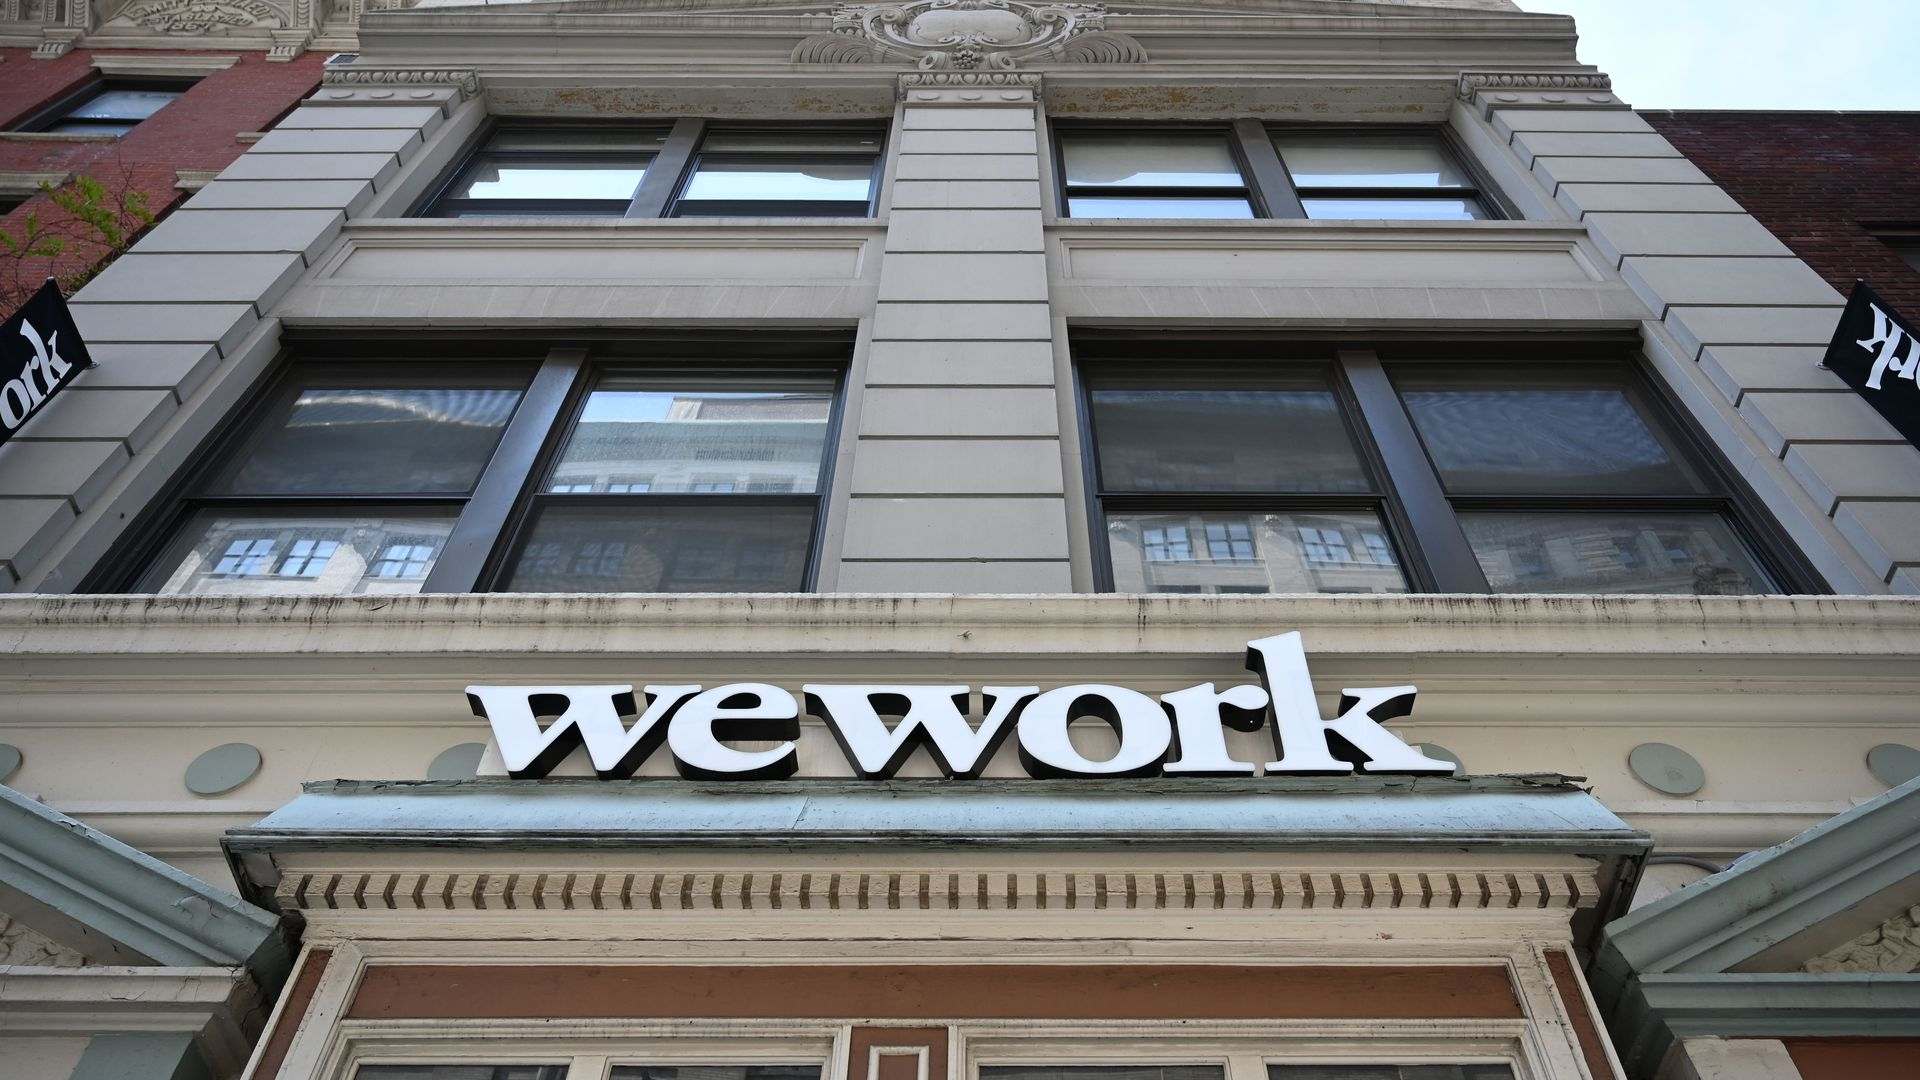 Photo of a facade of a WeWork building in New York